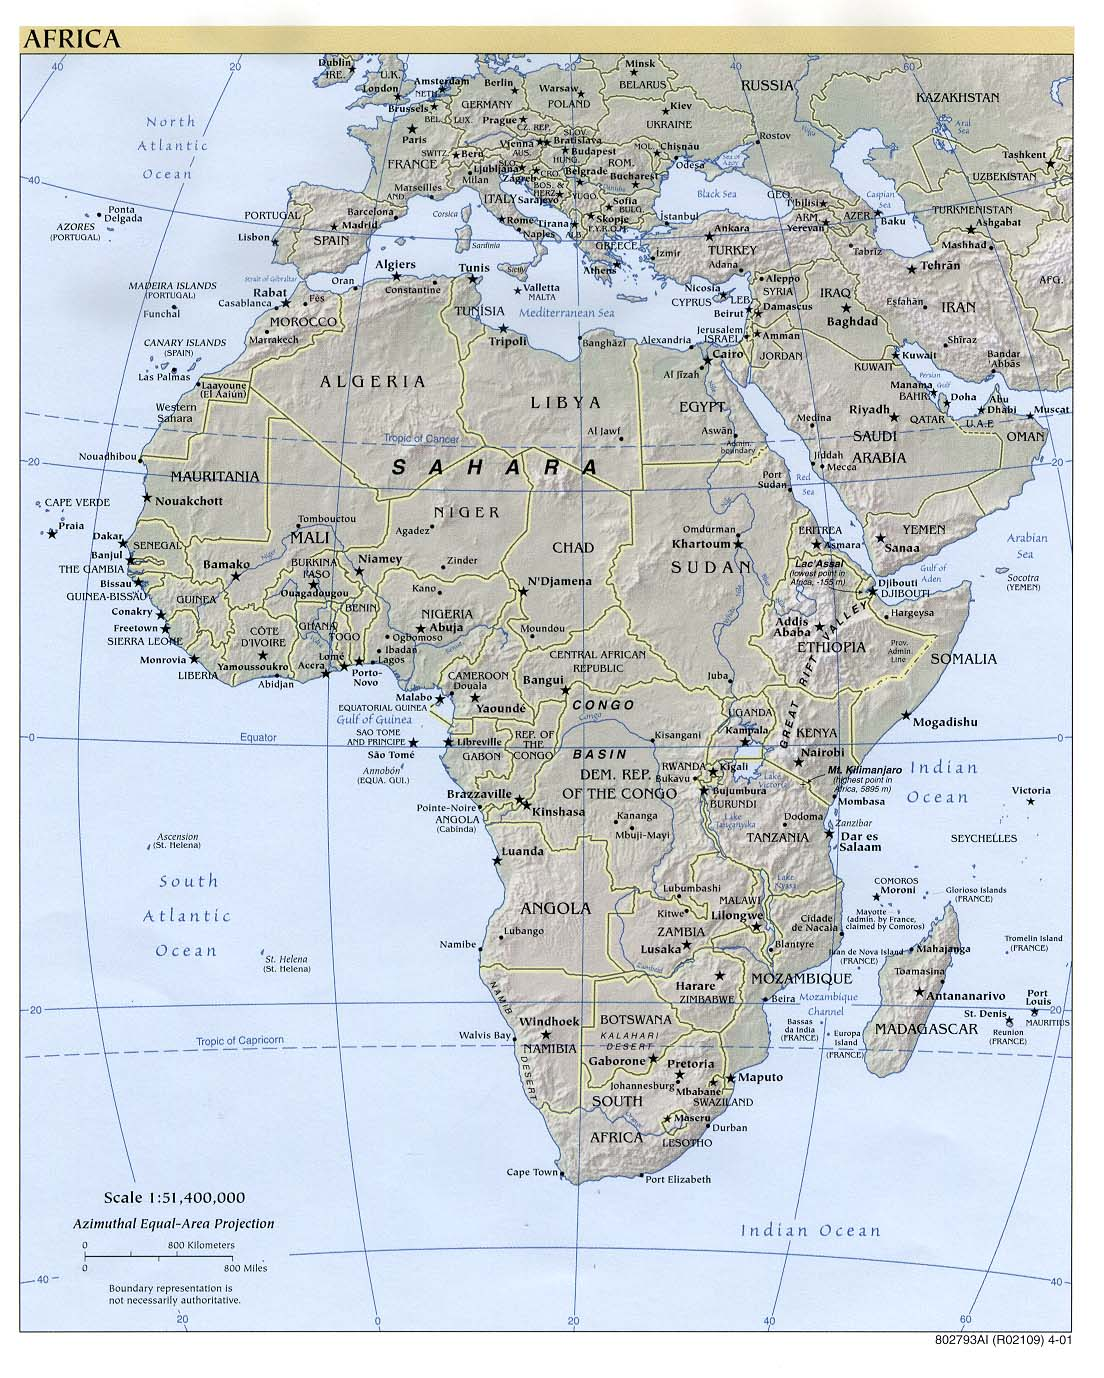 Free Download Of Africa Maps - Africa map pdf